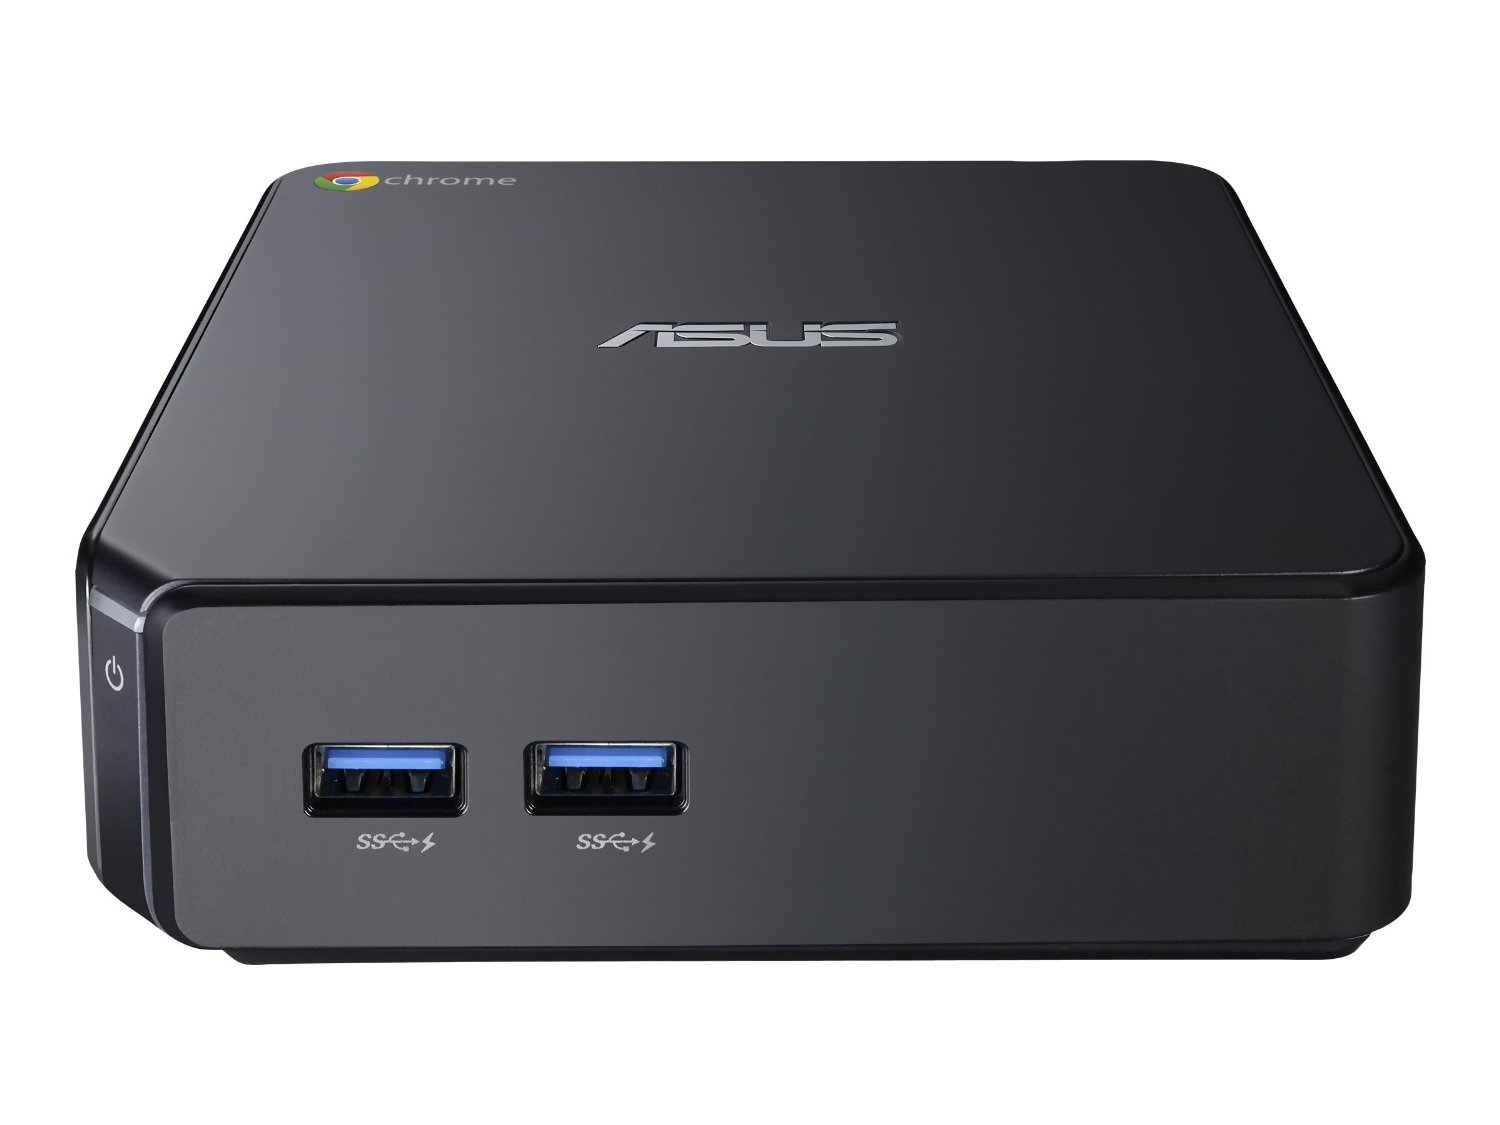 Chromebox: Chromebox Pictures, News Articles, Videos